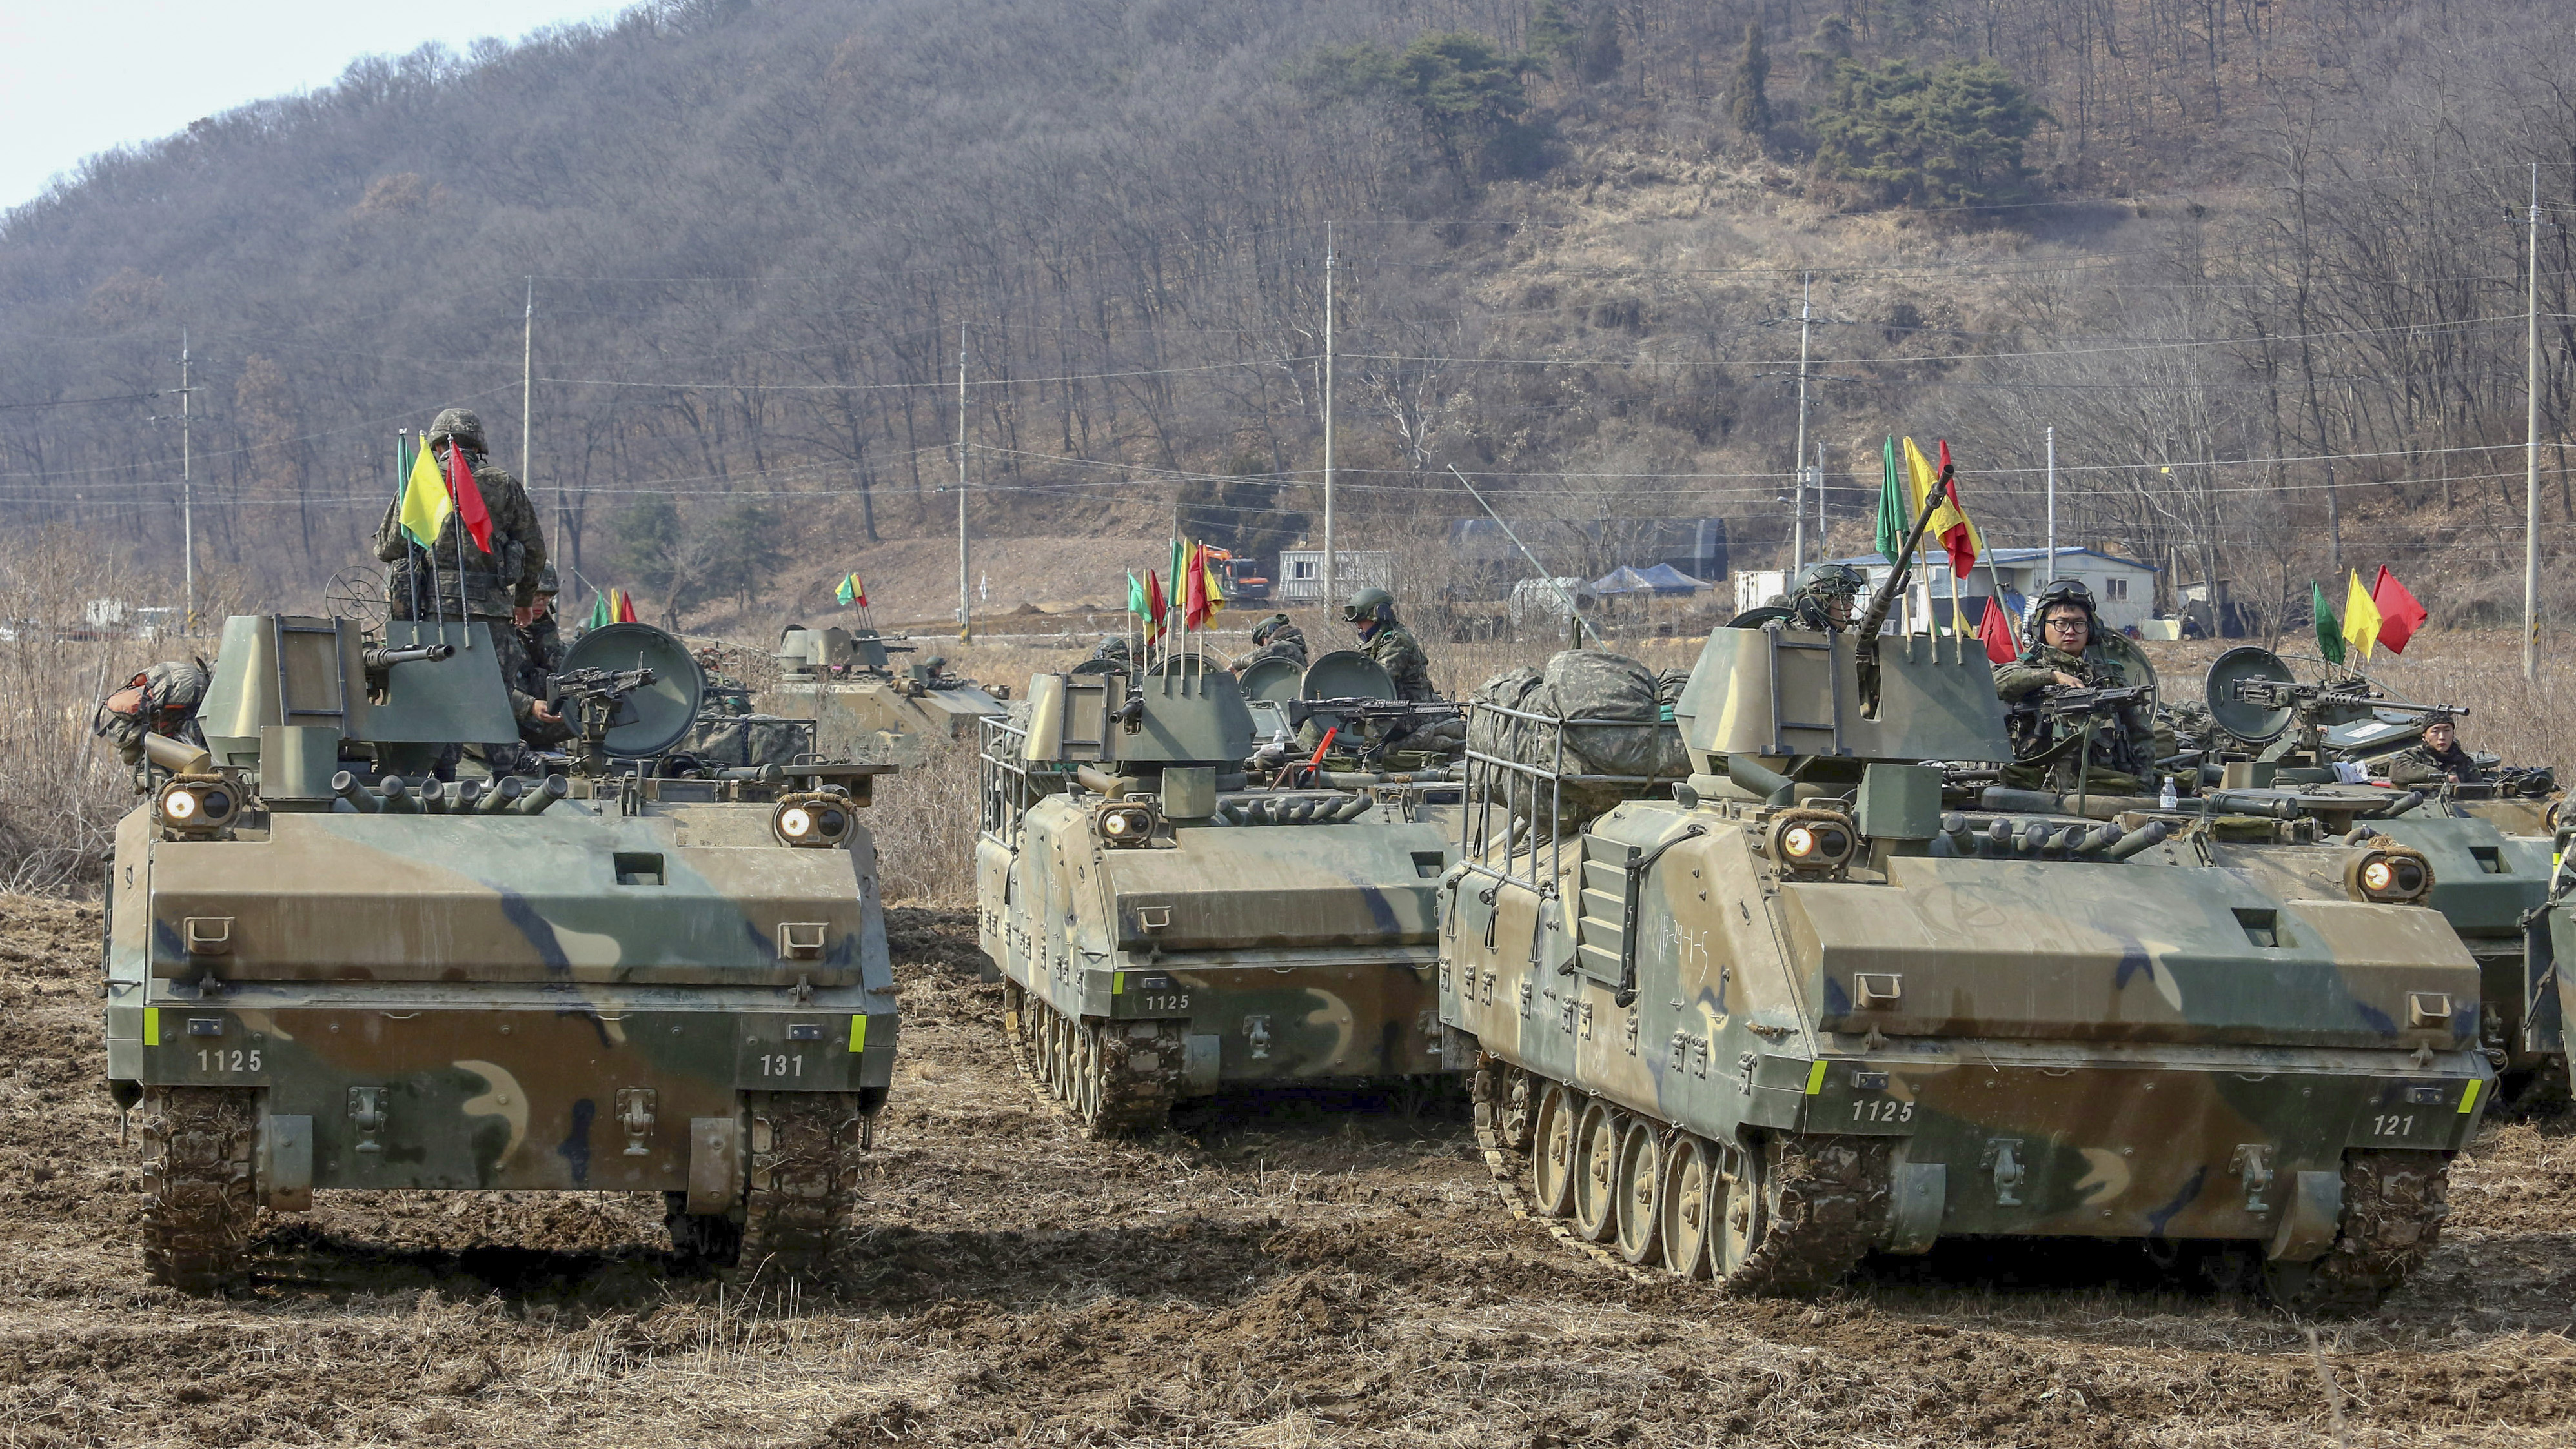 South Korean army soldiers participate in a military exercise in Yeoncheon, South Korea, near the border with North Korea, Wednesday, Feb. 27, 2019 during President Donald Trump's second meeting with North Korean leader Kim Jong Un aimed at getting Kim to give up nuclear weapons in exchange for relief from sanctions hobbling his economy and better relations with the U.S. and other nations. (AP Photo/Ahn Young-joon)